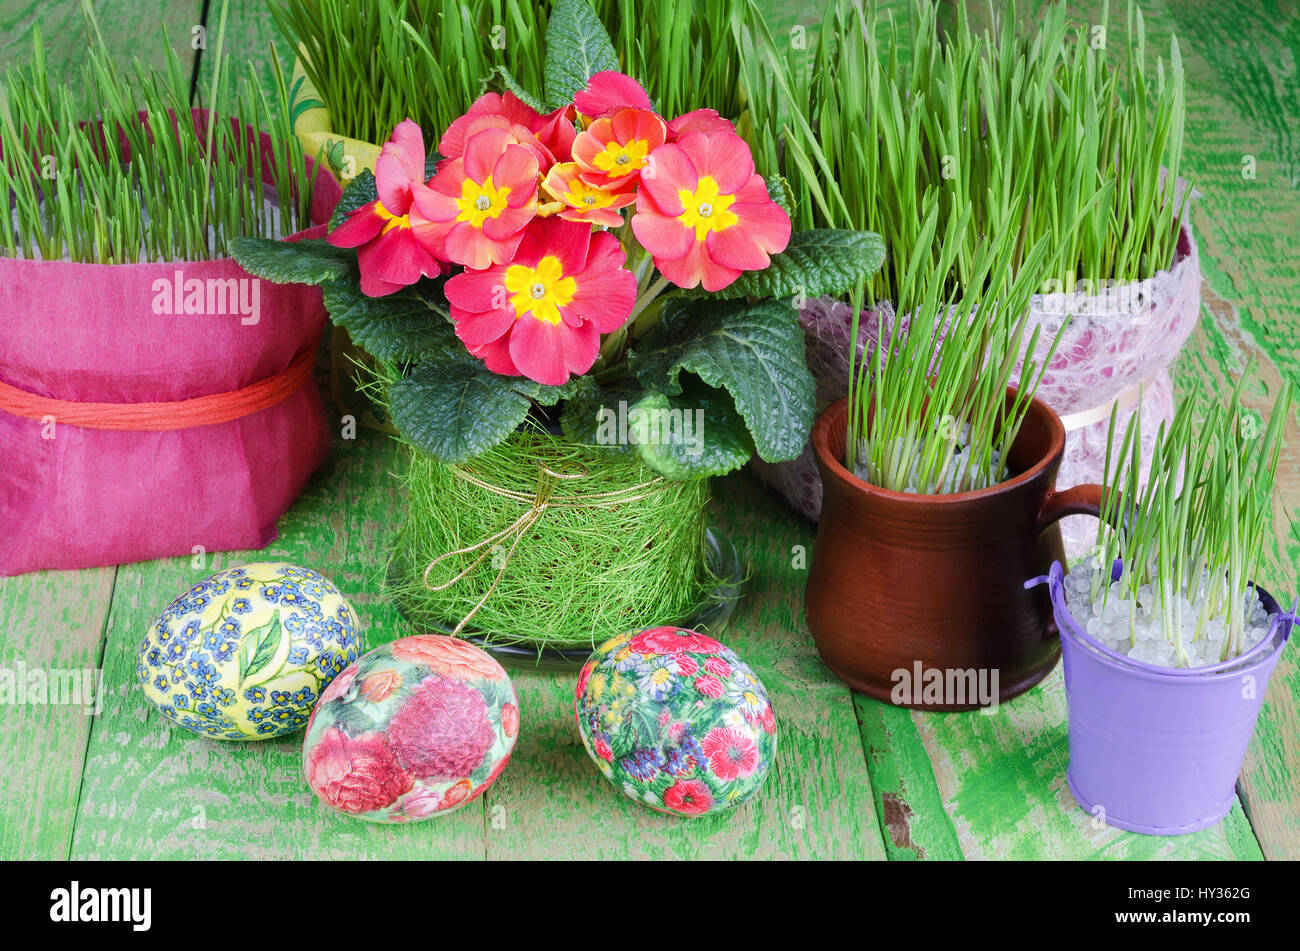 Potted plants and Easter eggs - Stock Image